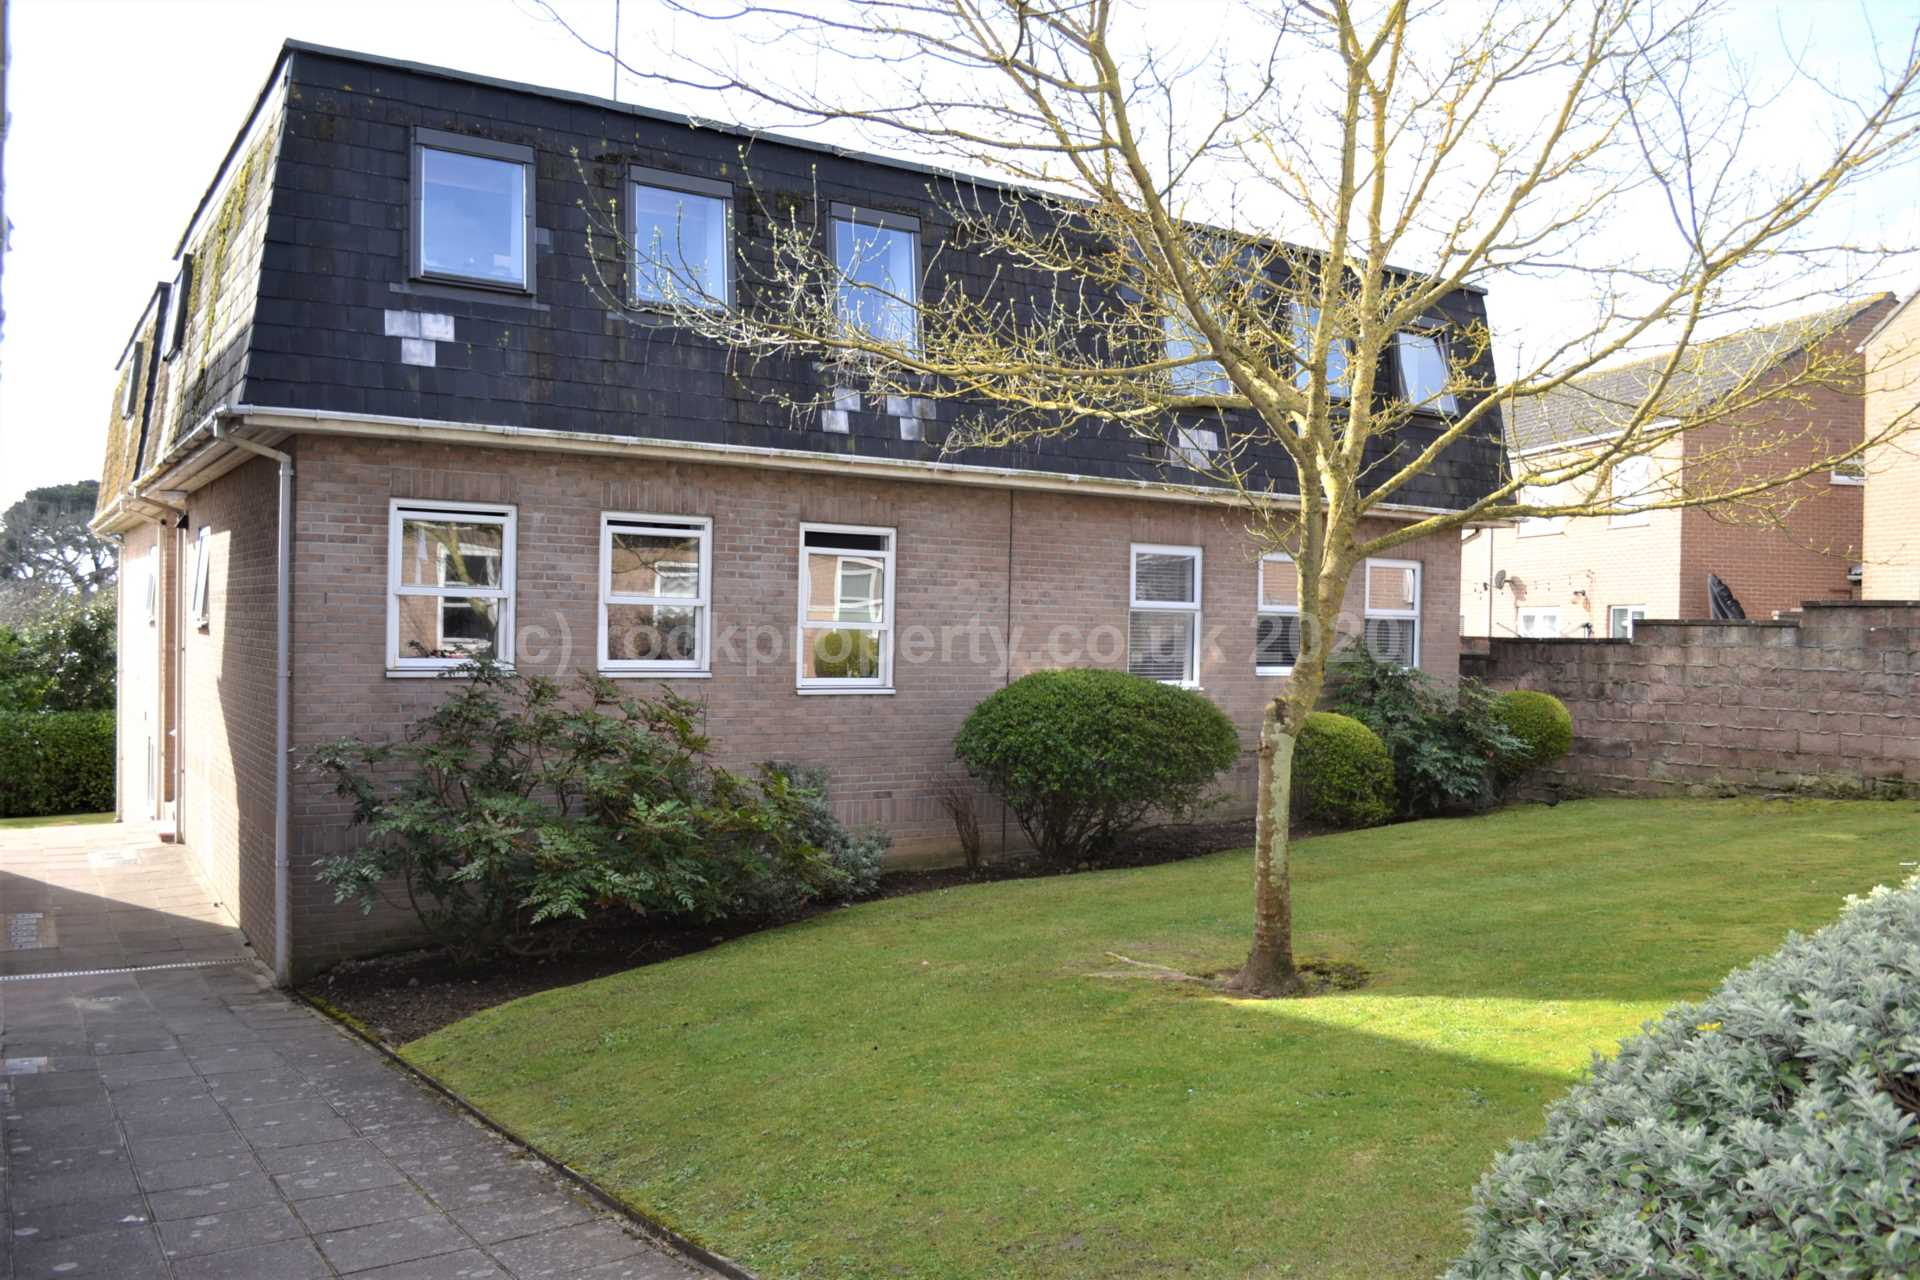 Rockproperty Ltd - 1 Bedroom Apartment, Richmond Road, Town Outskirts